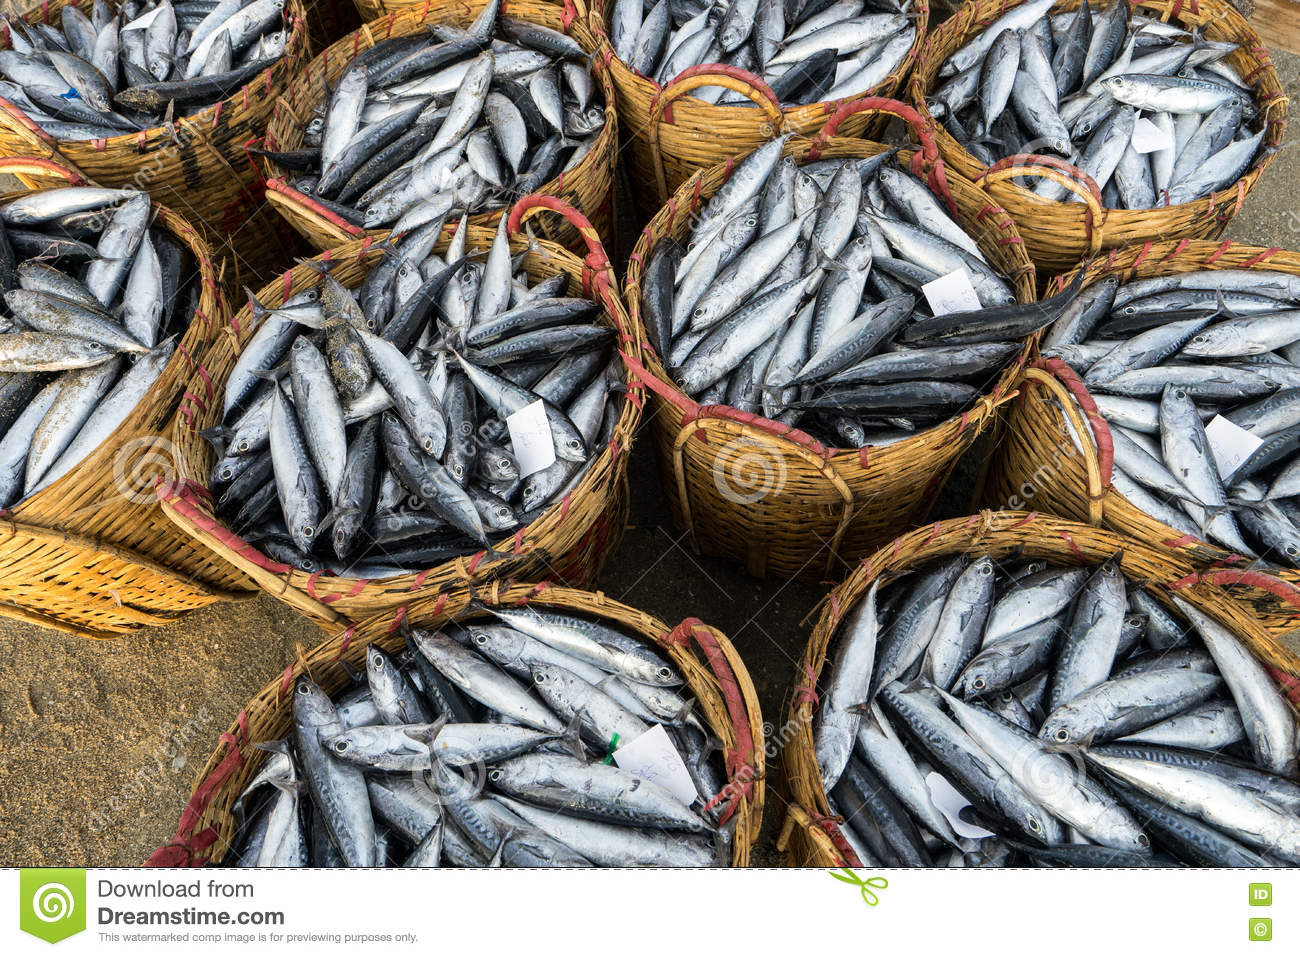 long hai vietnam 03 july 2016 fresh fishes on bamboo basket in